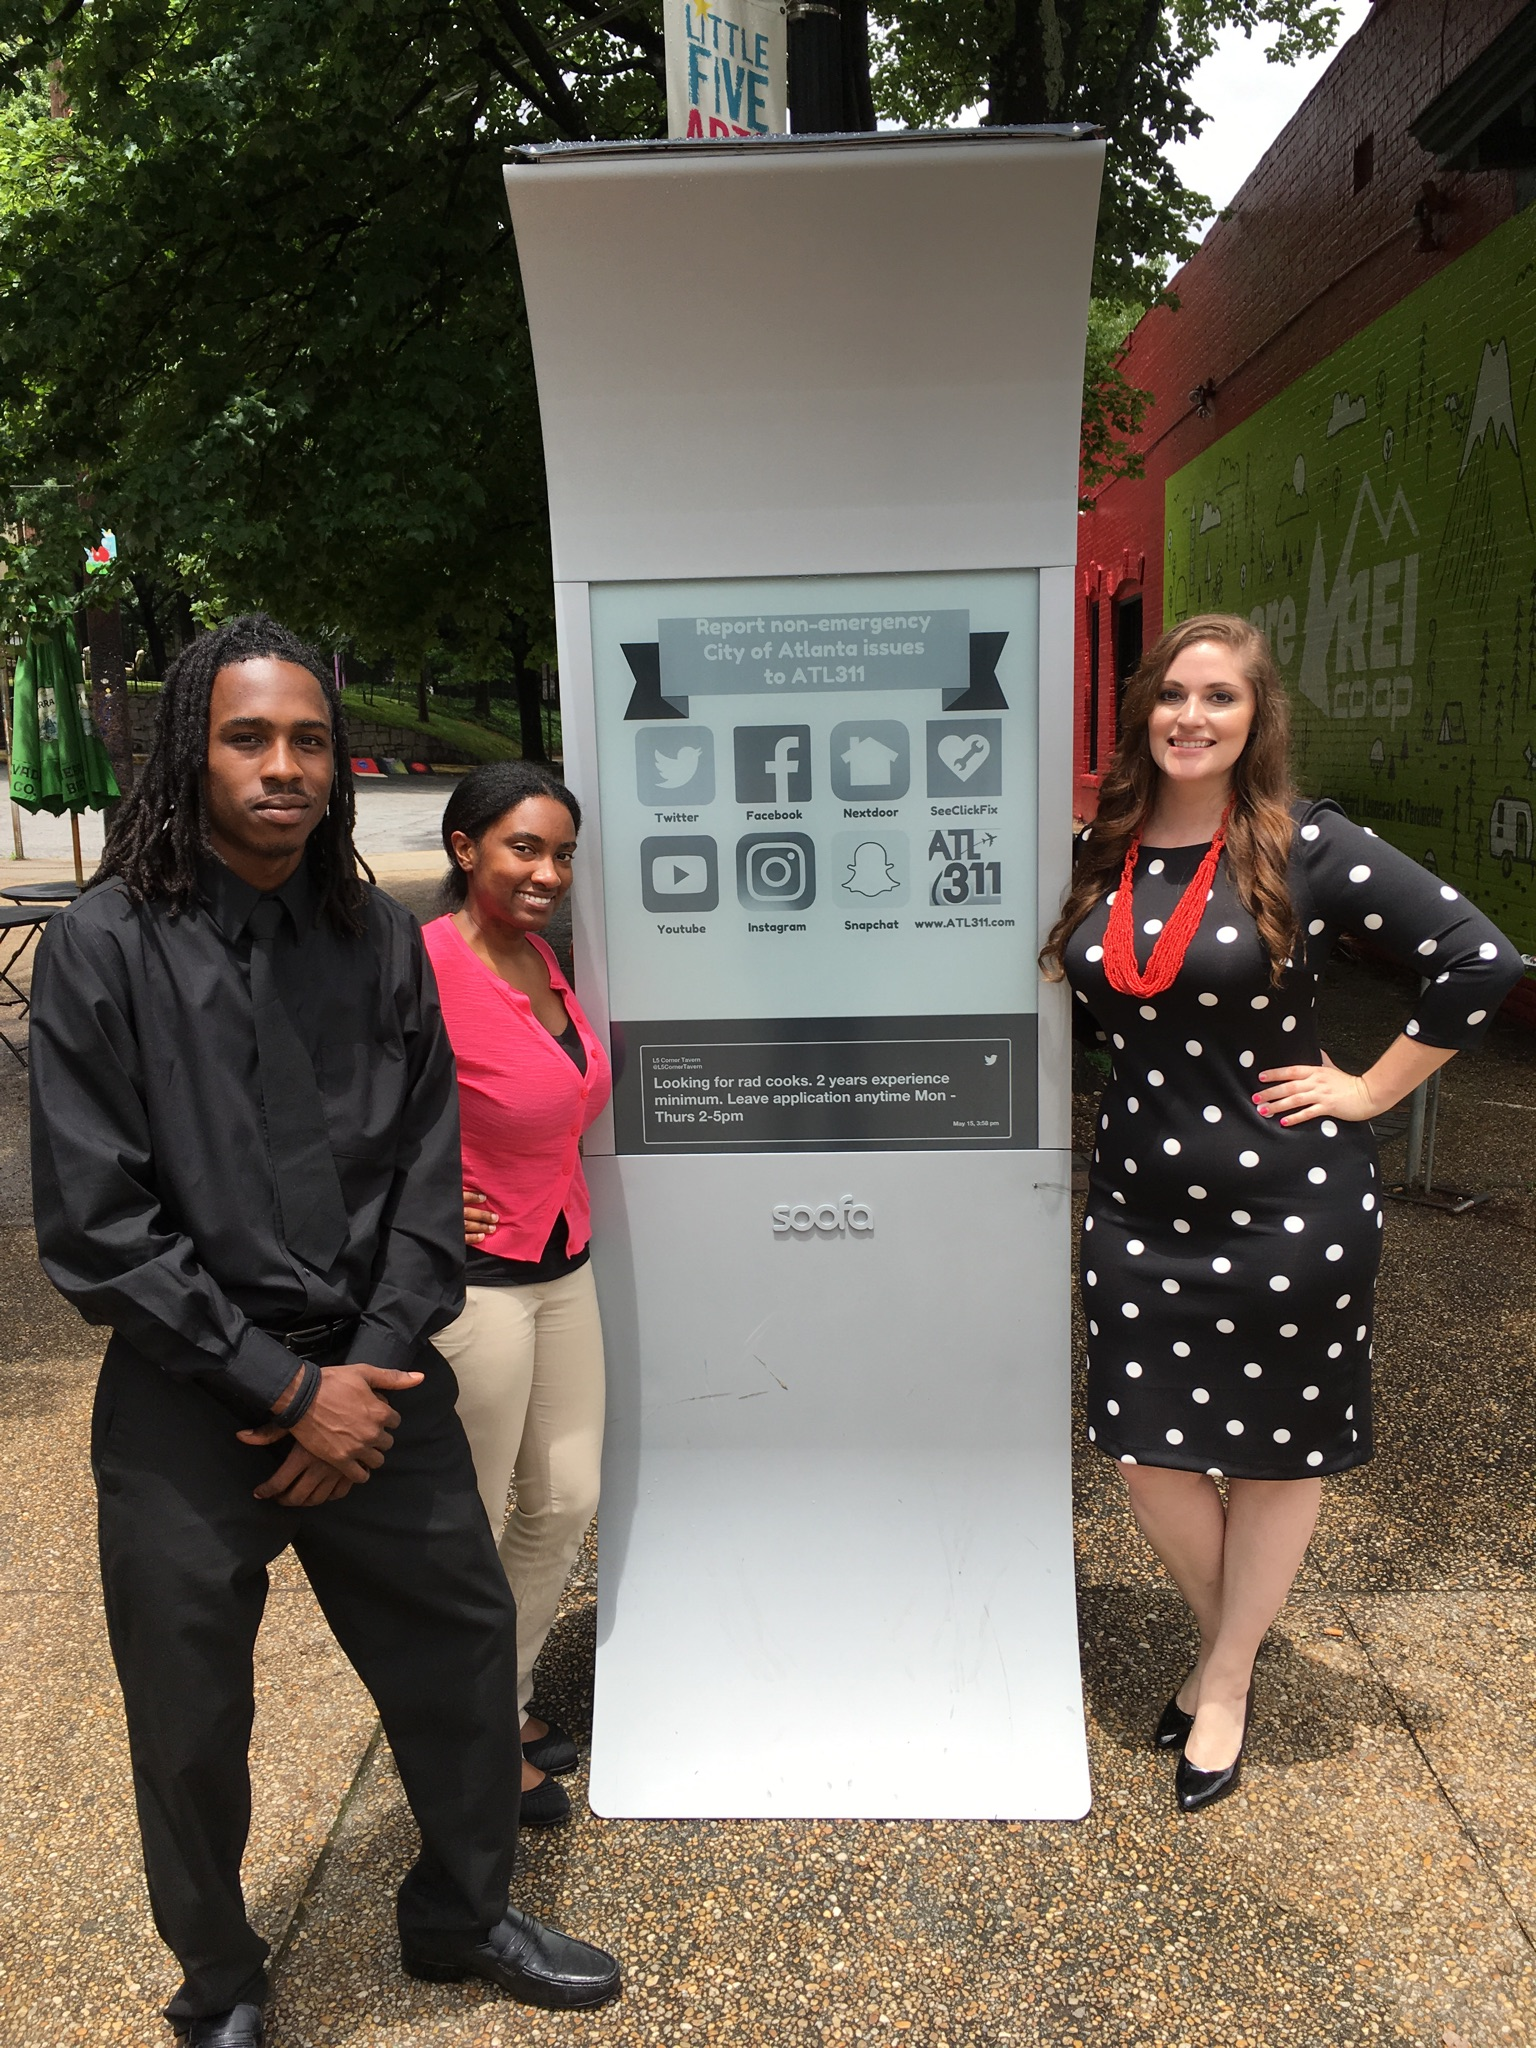 ATL311 Pioneers Civic Use of Soofa Signs To Engage Residents